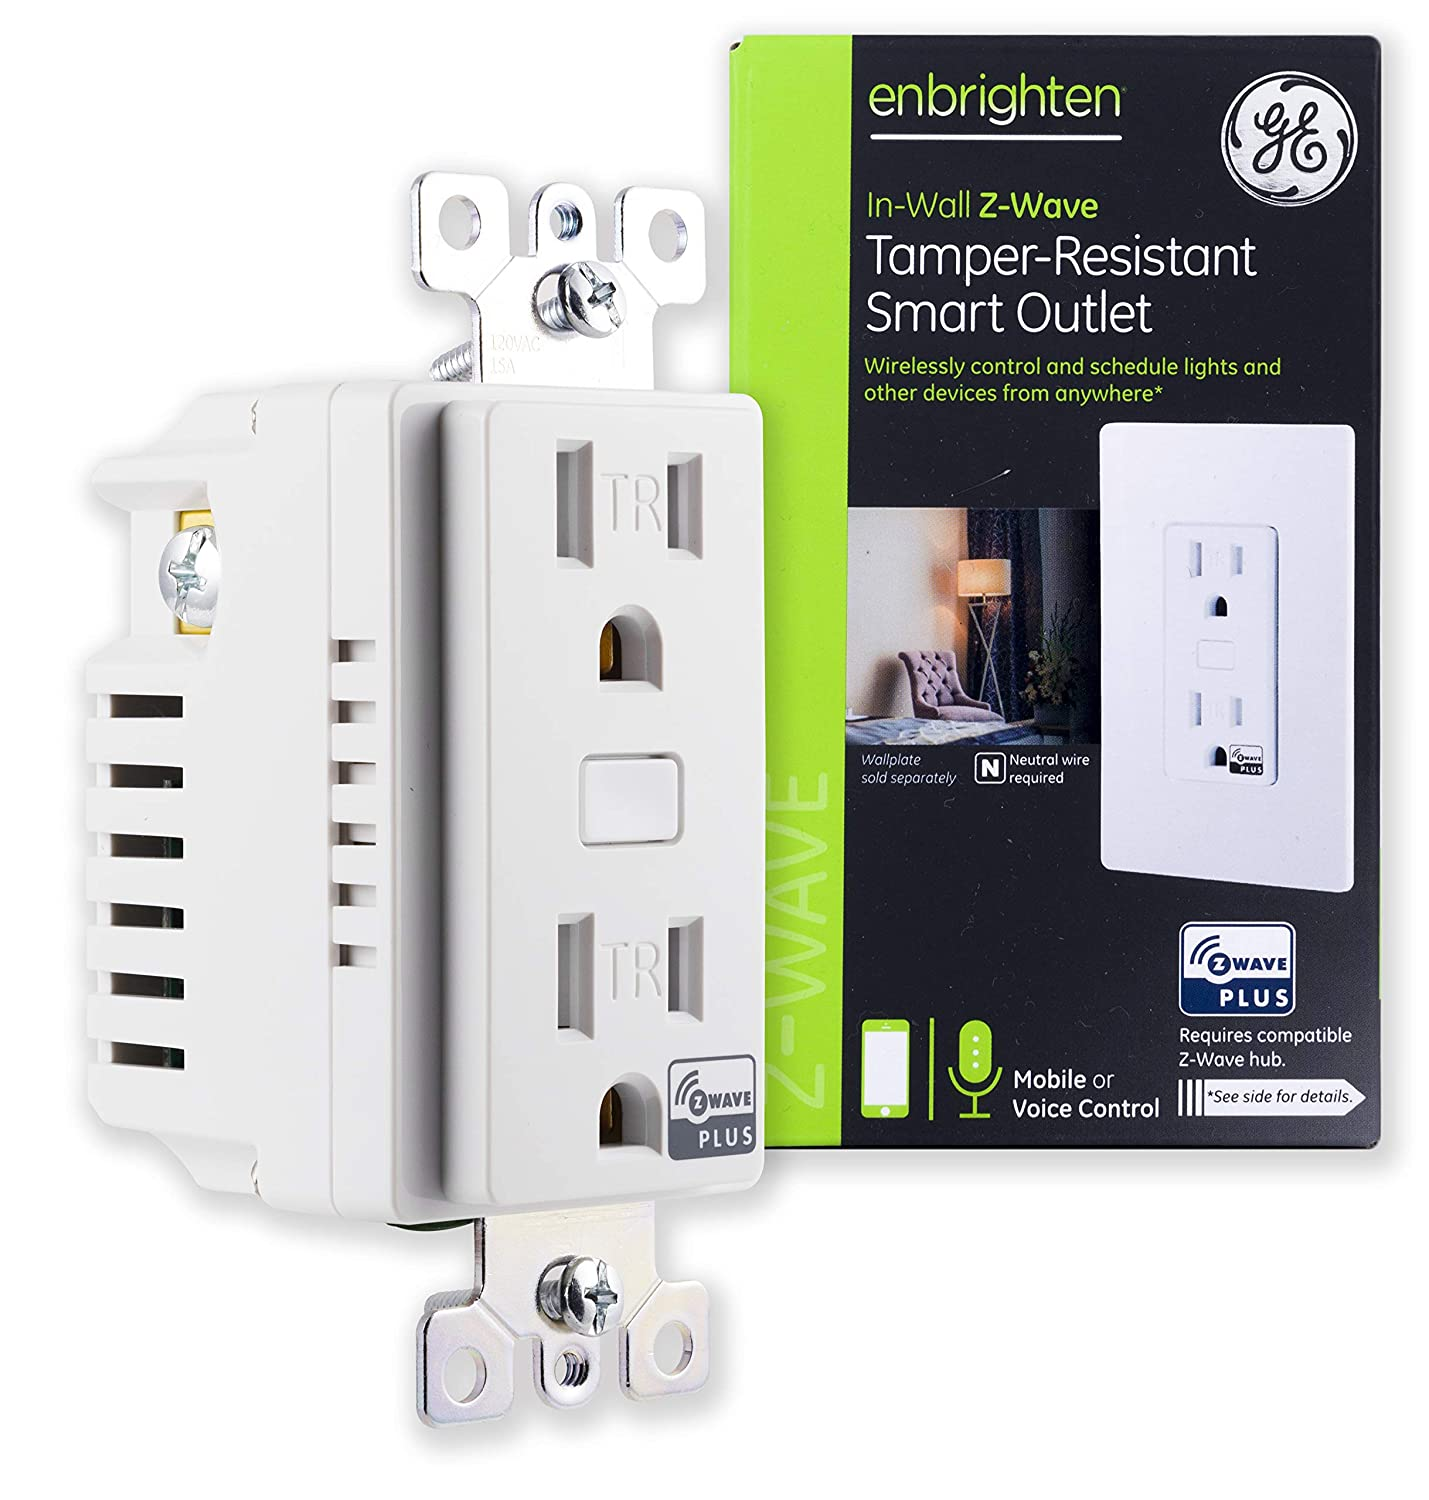 ge enbrighten z-wave plus smart receptacle outlet, on/off, tamper  resistant, 1 on / 1 controllable, for lighting/appliances, zwave hub  required,